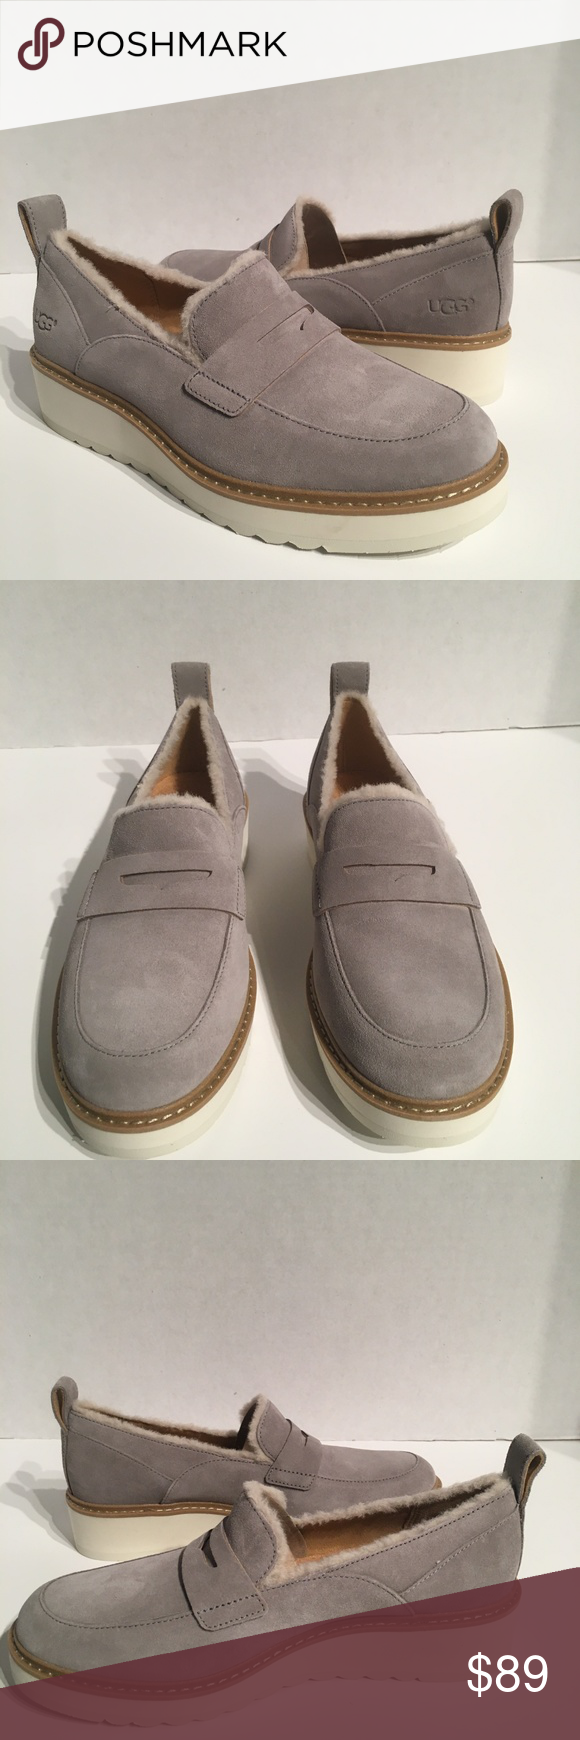 2541d0929bb Ugg Atwater Spill Seam Platform Loafer Grey Shoe New with box Buyers ...